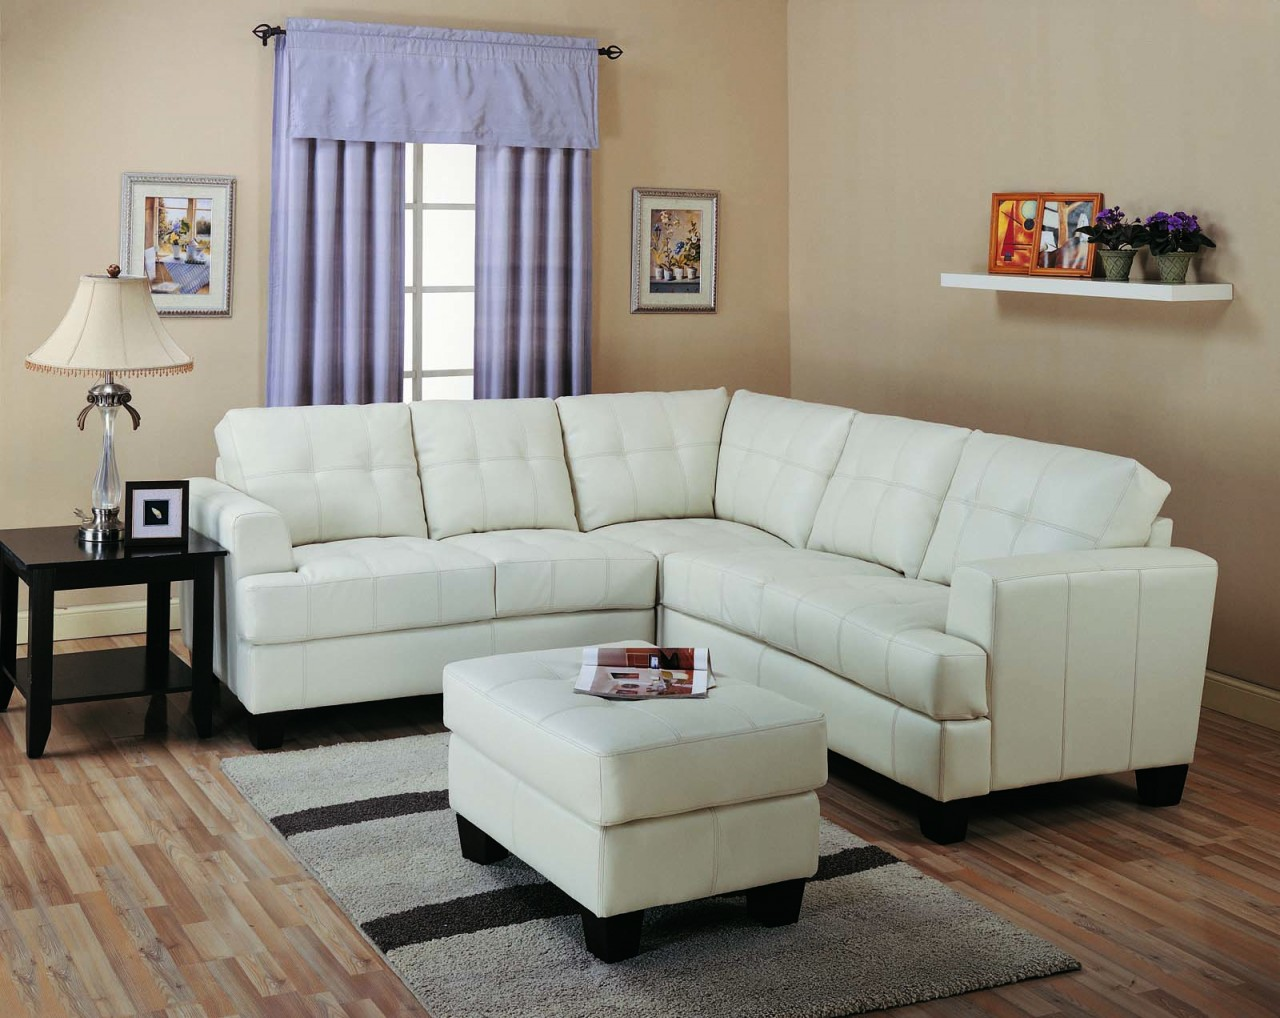 Types of best small sectional couches for small living for Sofa for small living room